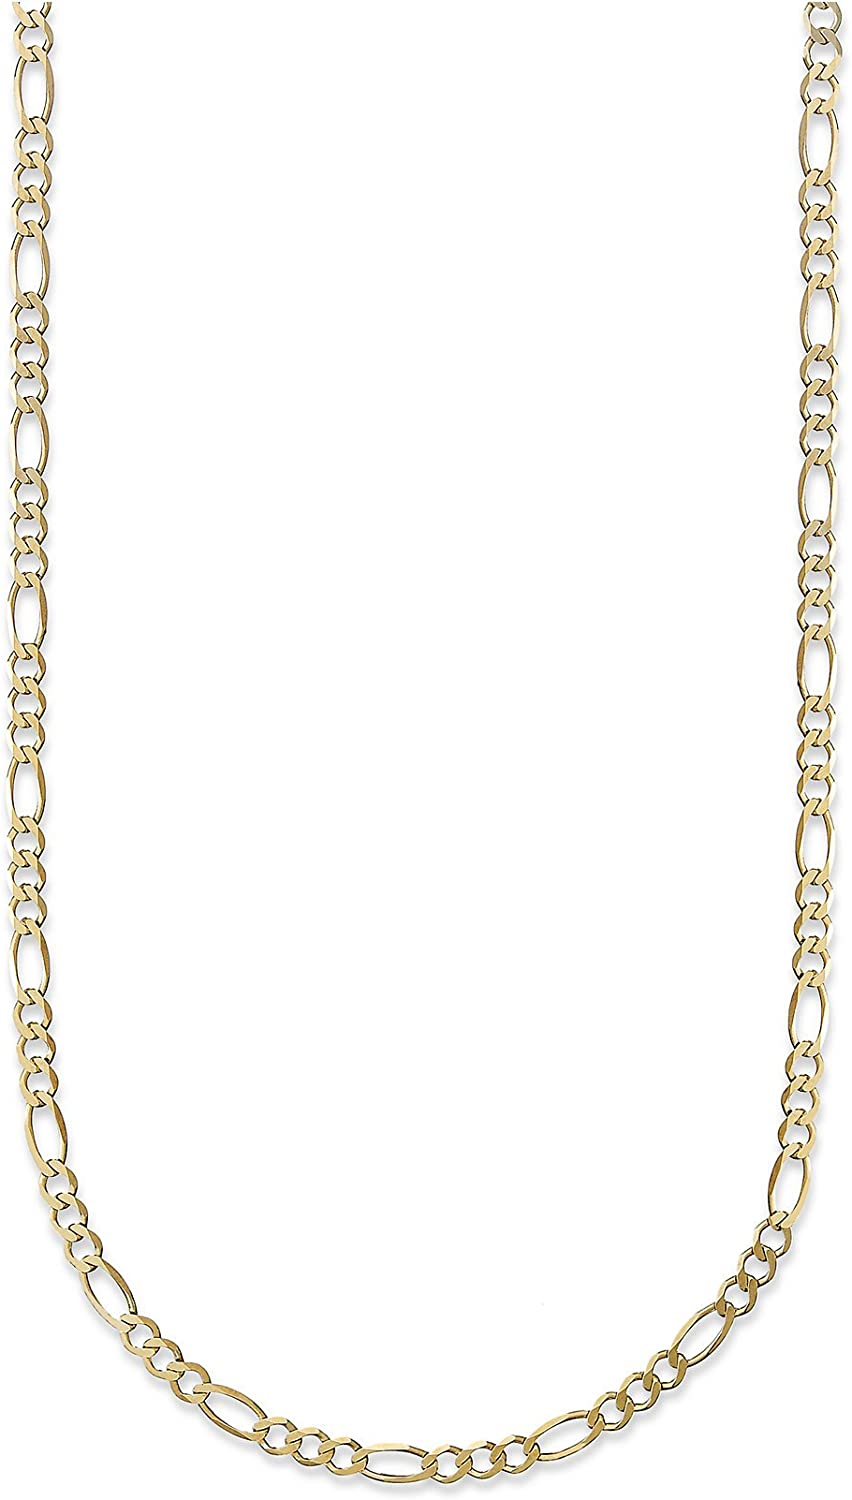 18 Karat Solid Yellow Gold Max 75% OFF 2.5mm Figaro 3+ Chain Link Popular Necklace -